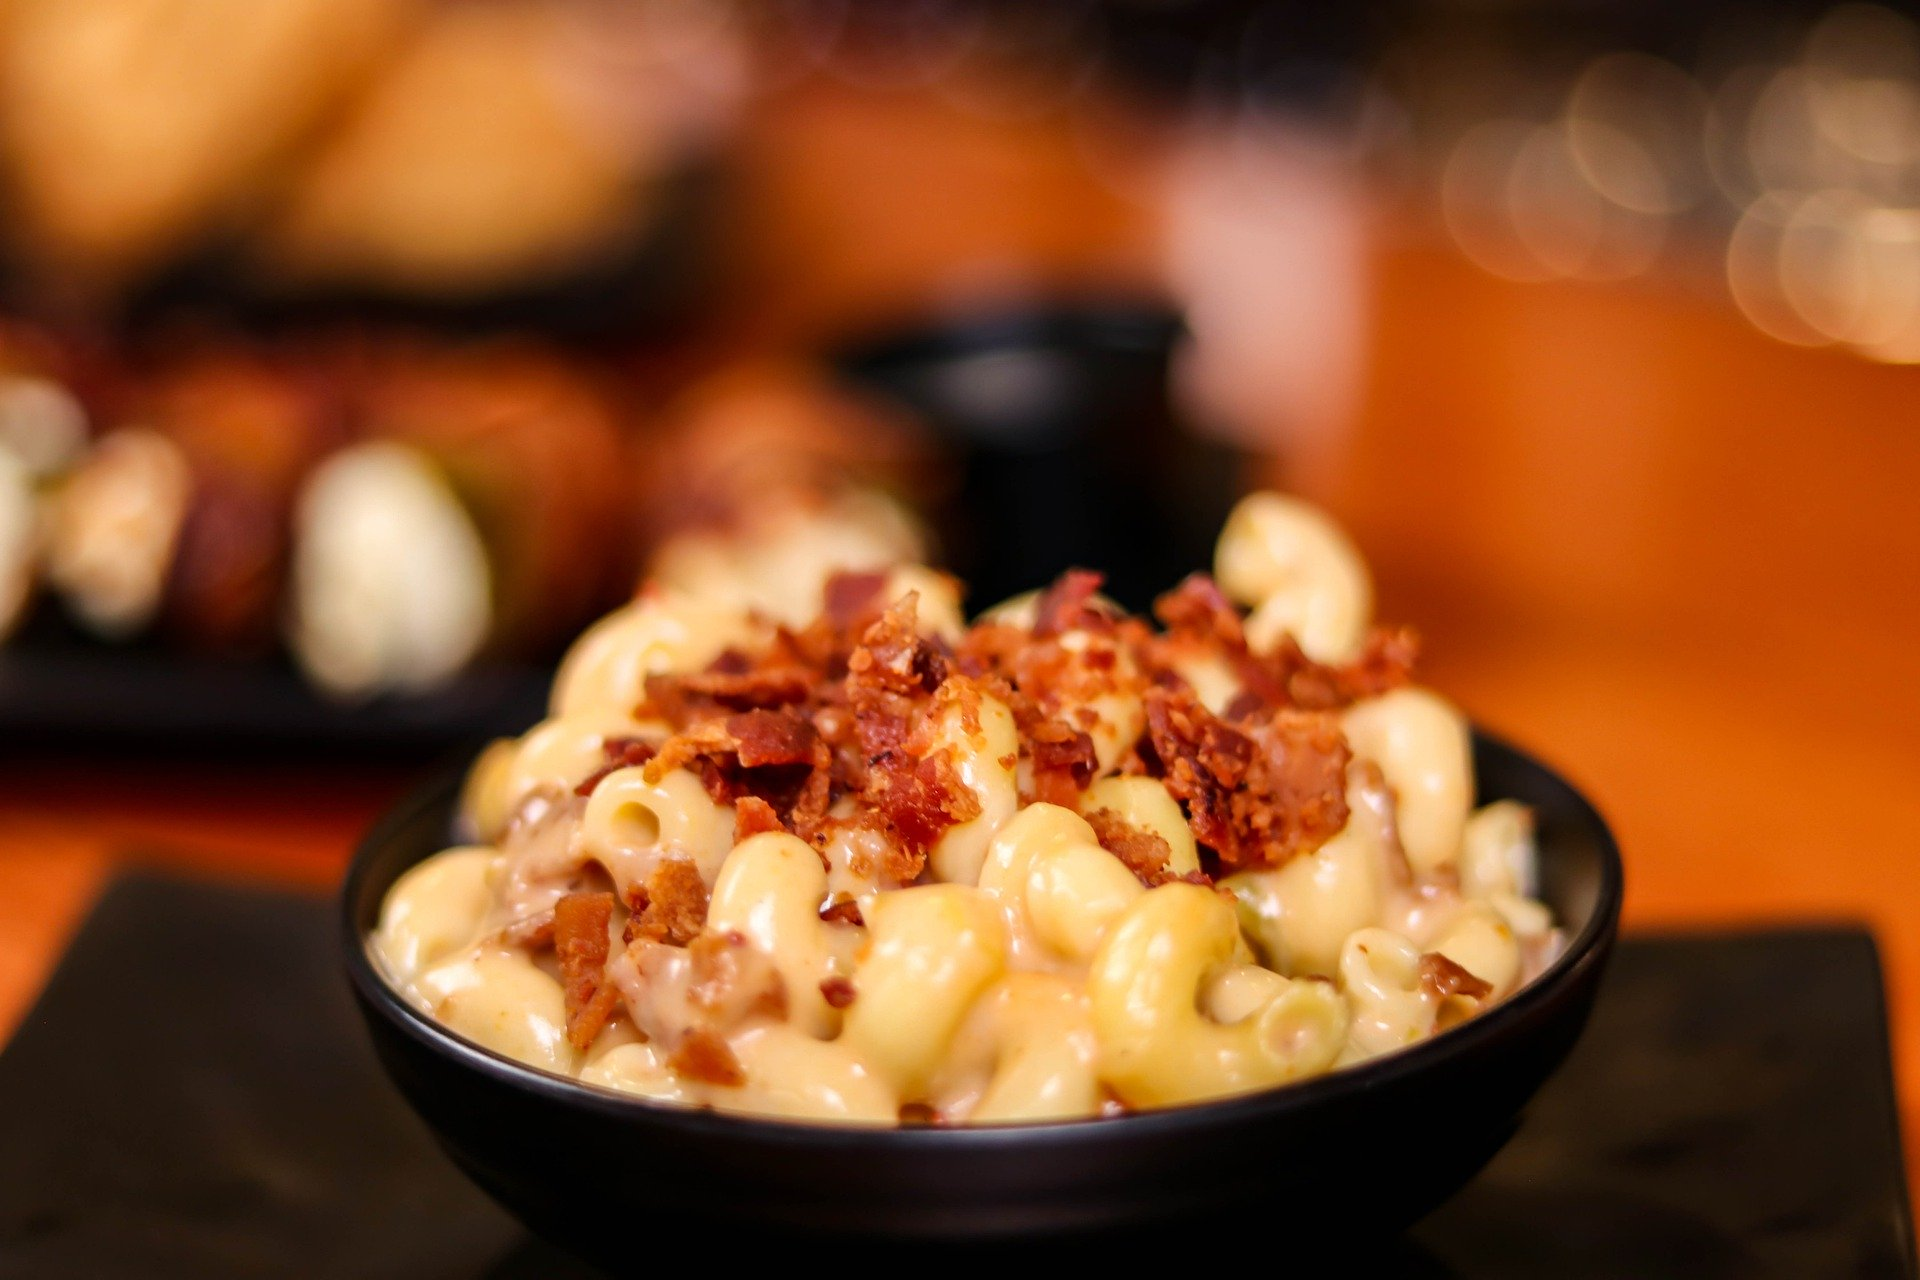 Macaroni and cheese in a bowl, topped with bacon